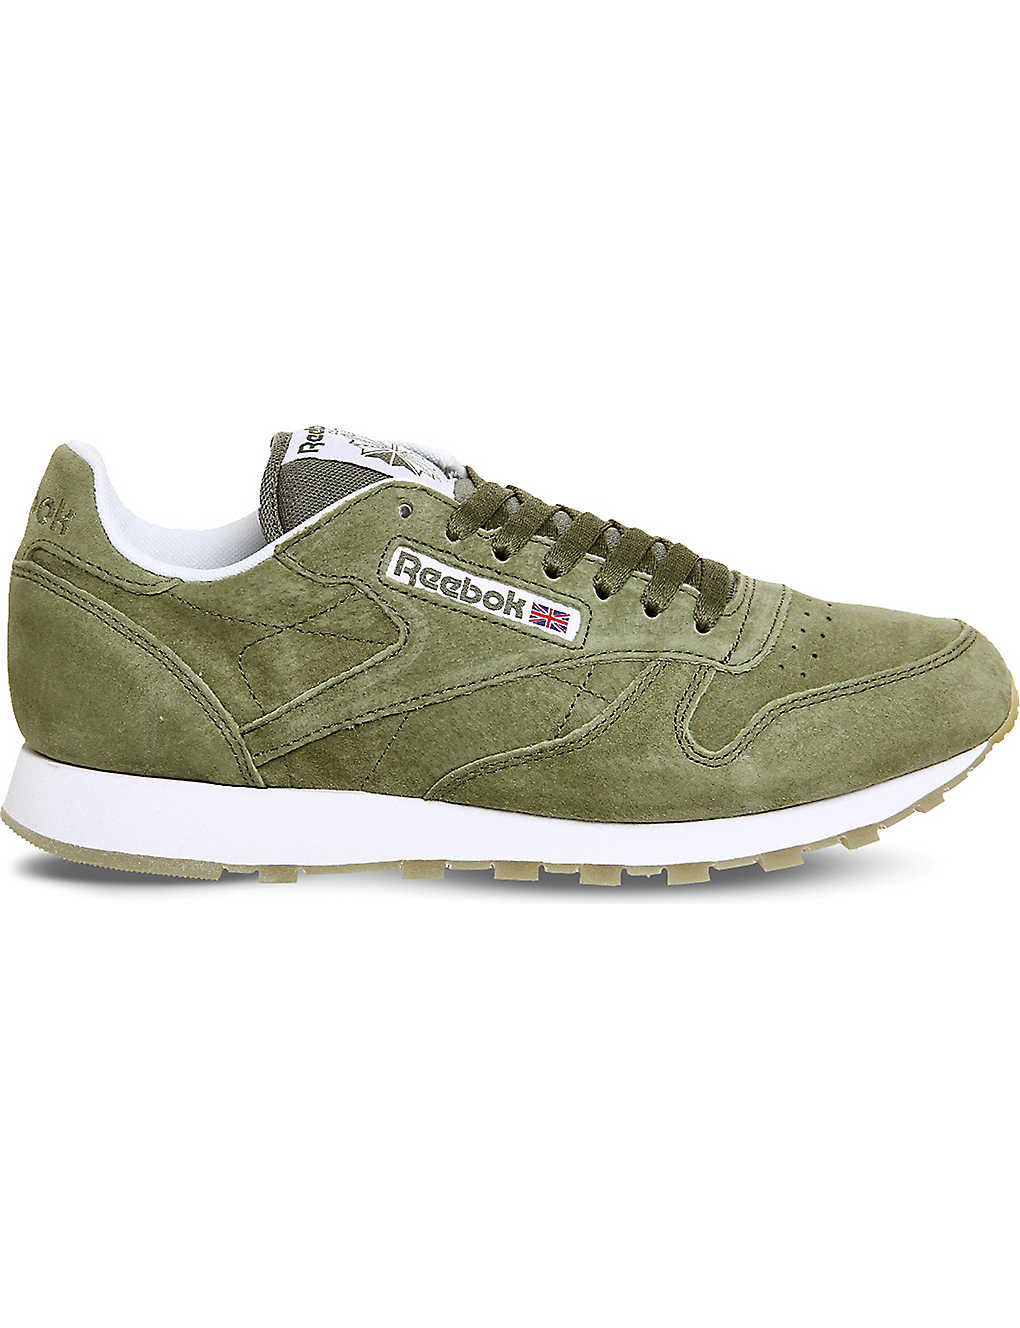 74608748c40 REEBOK - Classic lace-up suede trainers